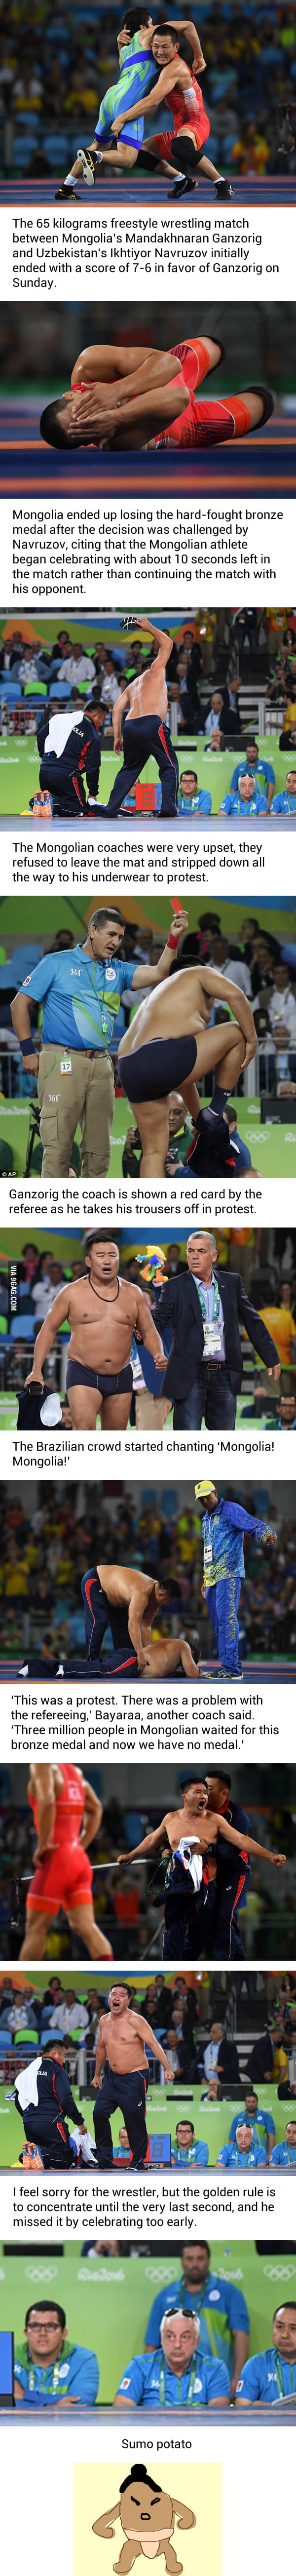 Mongolian Meltdown! Wrestling Coaches Tear Off Their Clothes To Protest Decision